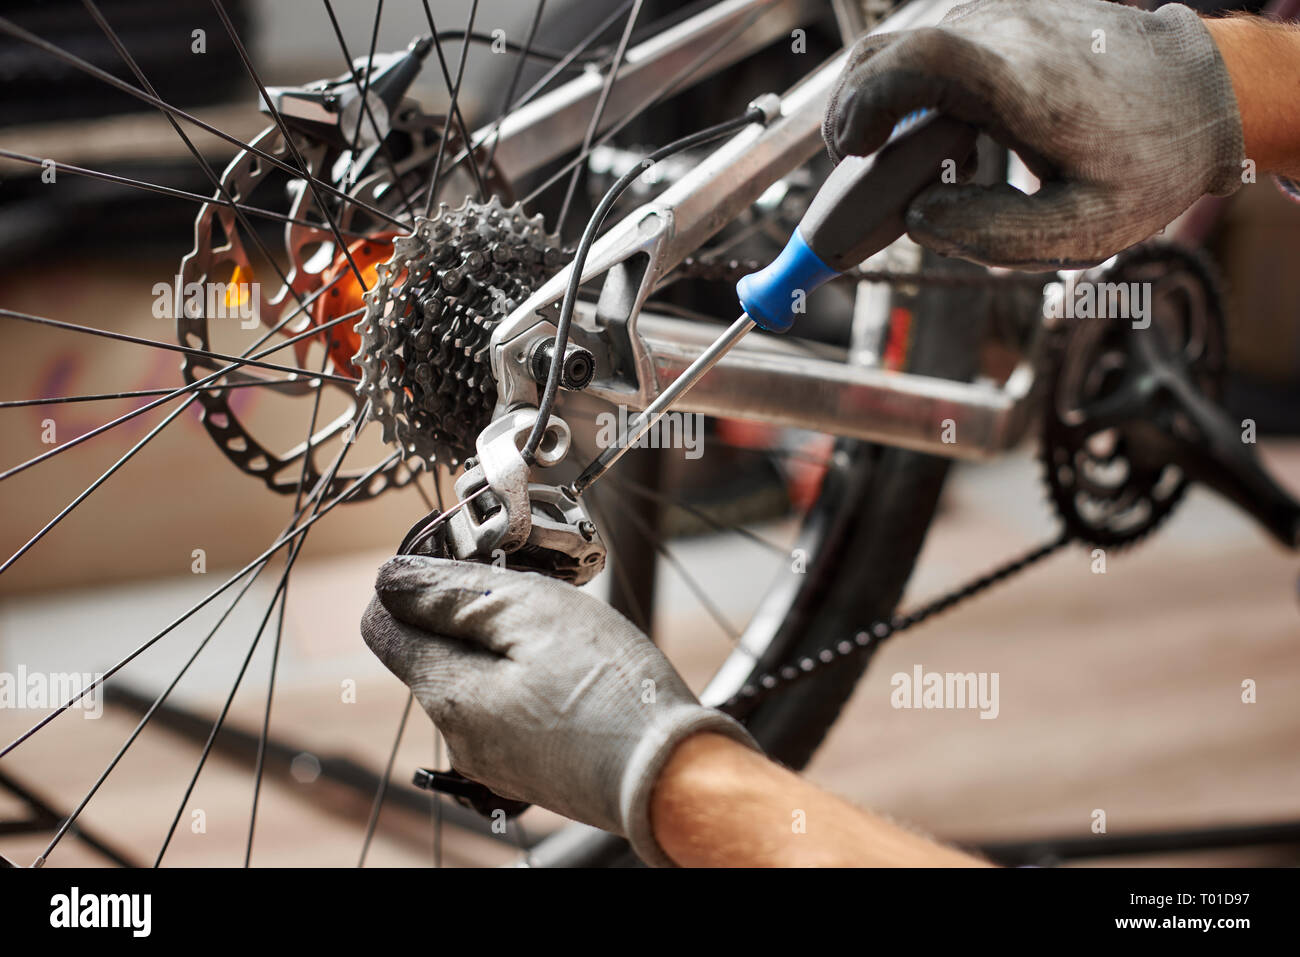 Cropped shot of male mechanic working in bicycle repair shop